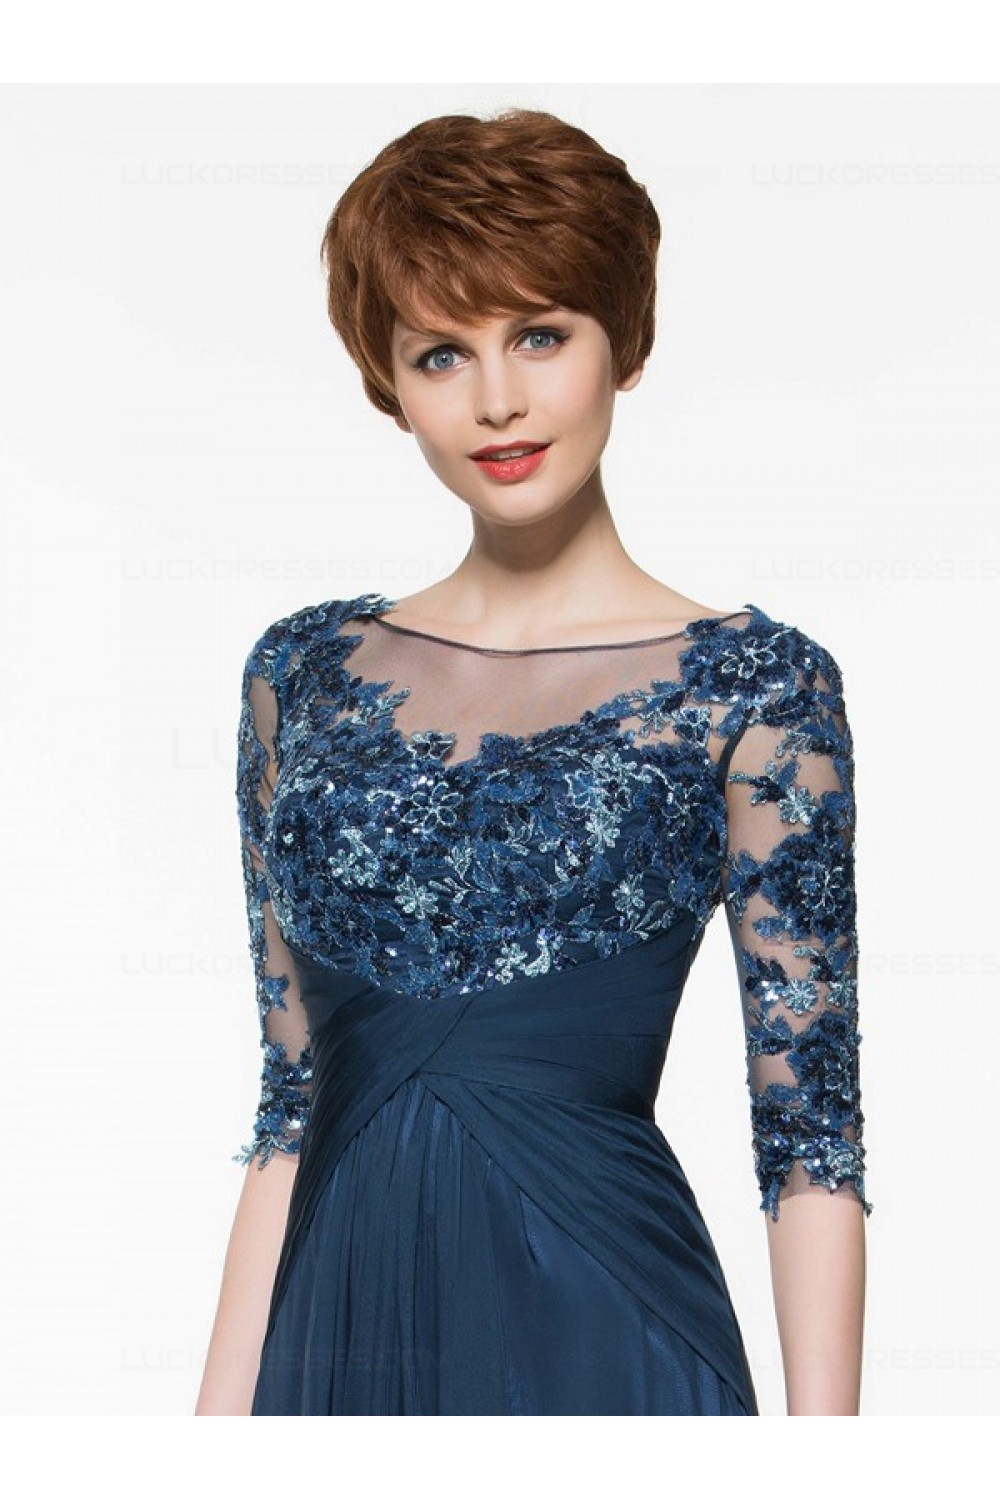 bfe0bb16c6 Half Sleeves Illusion Neckline Lace Appliques Chiffon Mother of The Bride  Dresses 3040005